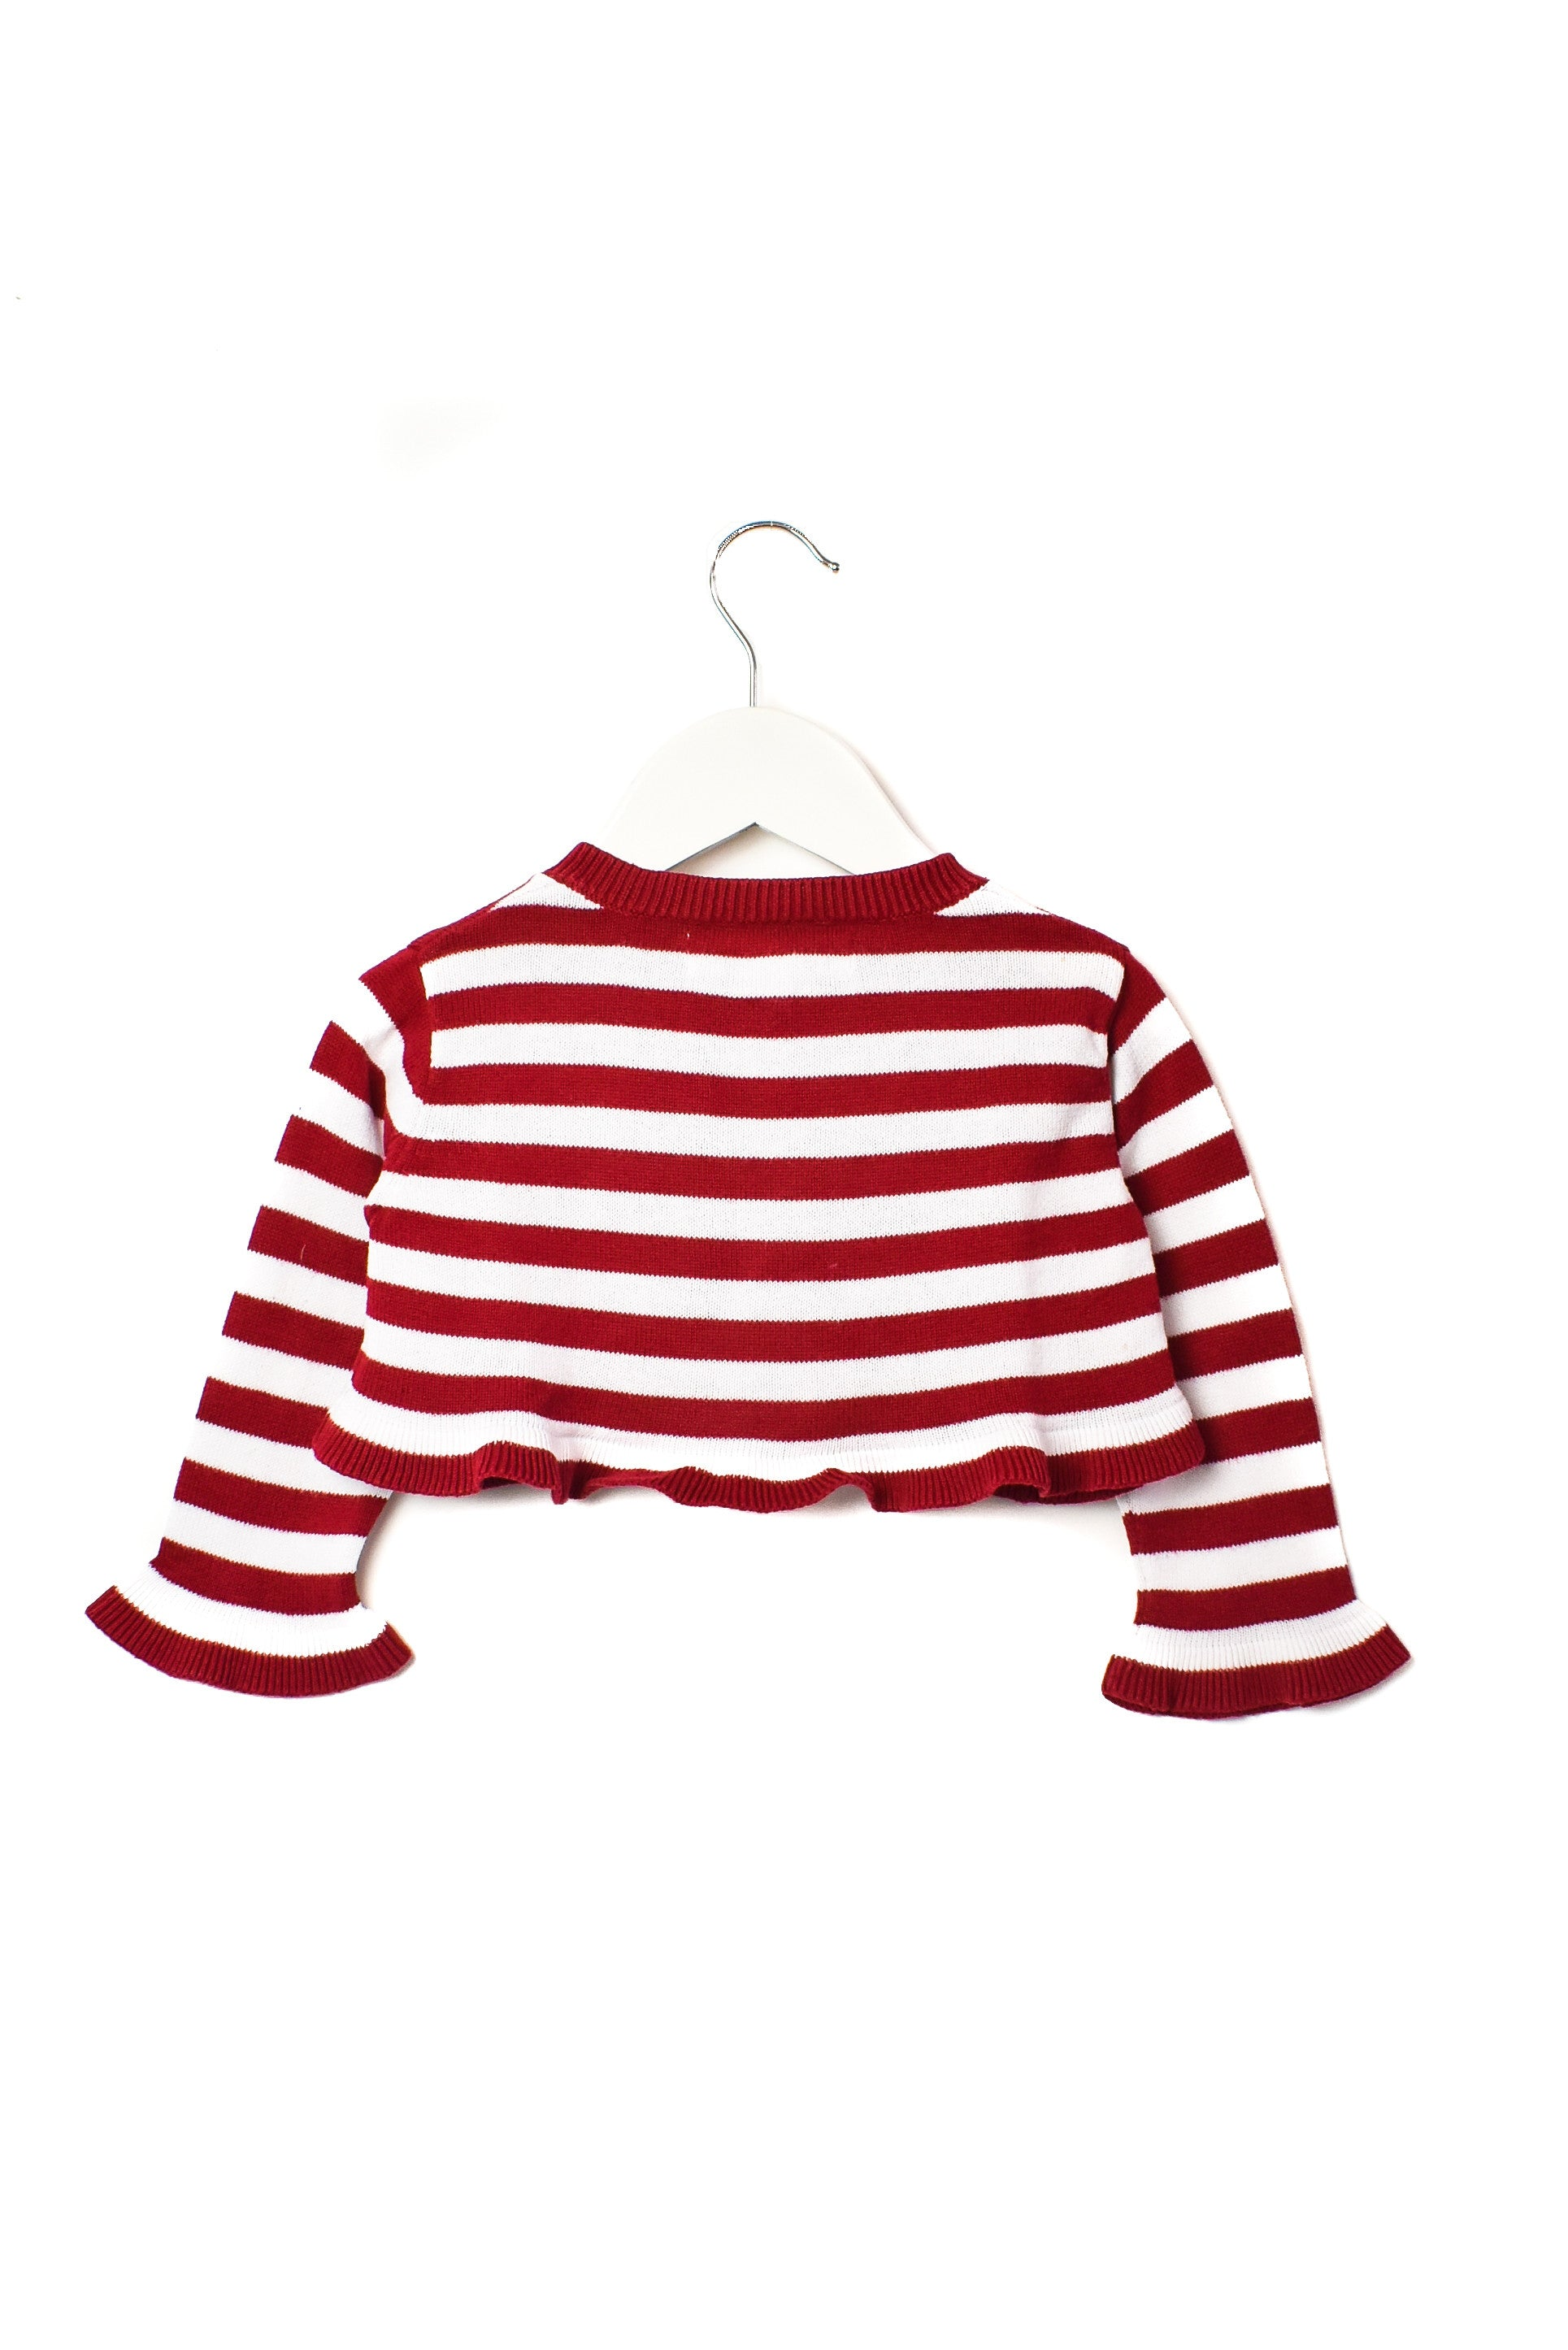 10004157 Chateau de Sable Baby~Cardigan 18M, Chateau de Sable Retykle | Online Baby & Kids Clothing Hong Kong